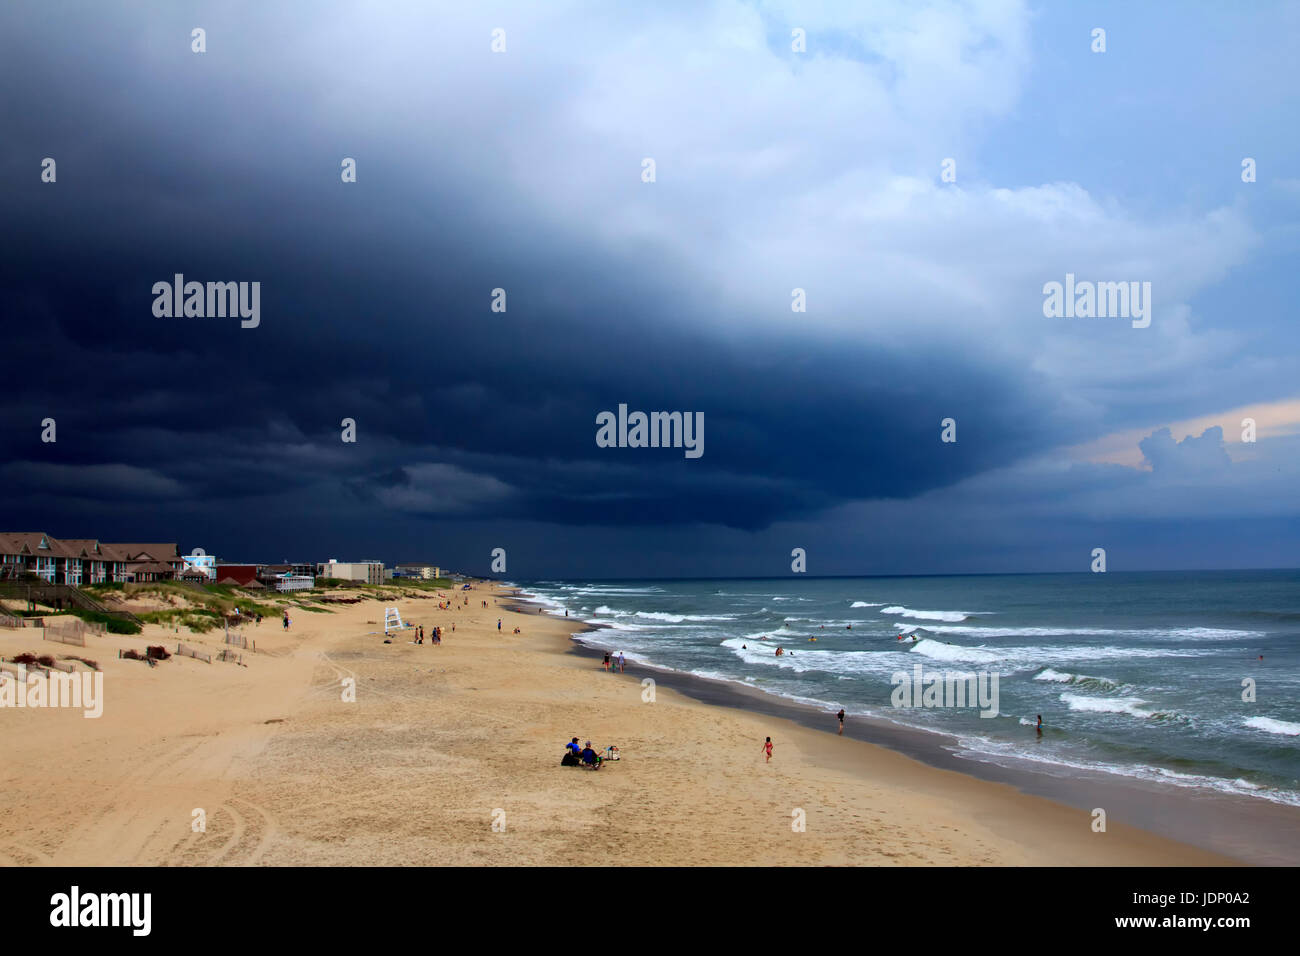 Thunderstorm approaching nags head beach outer banks north carolina - Stock Image